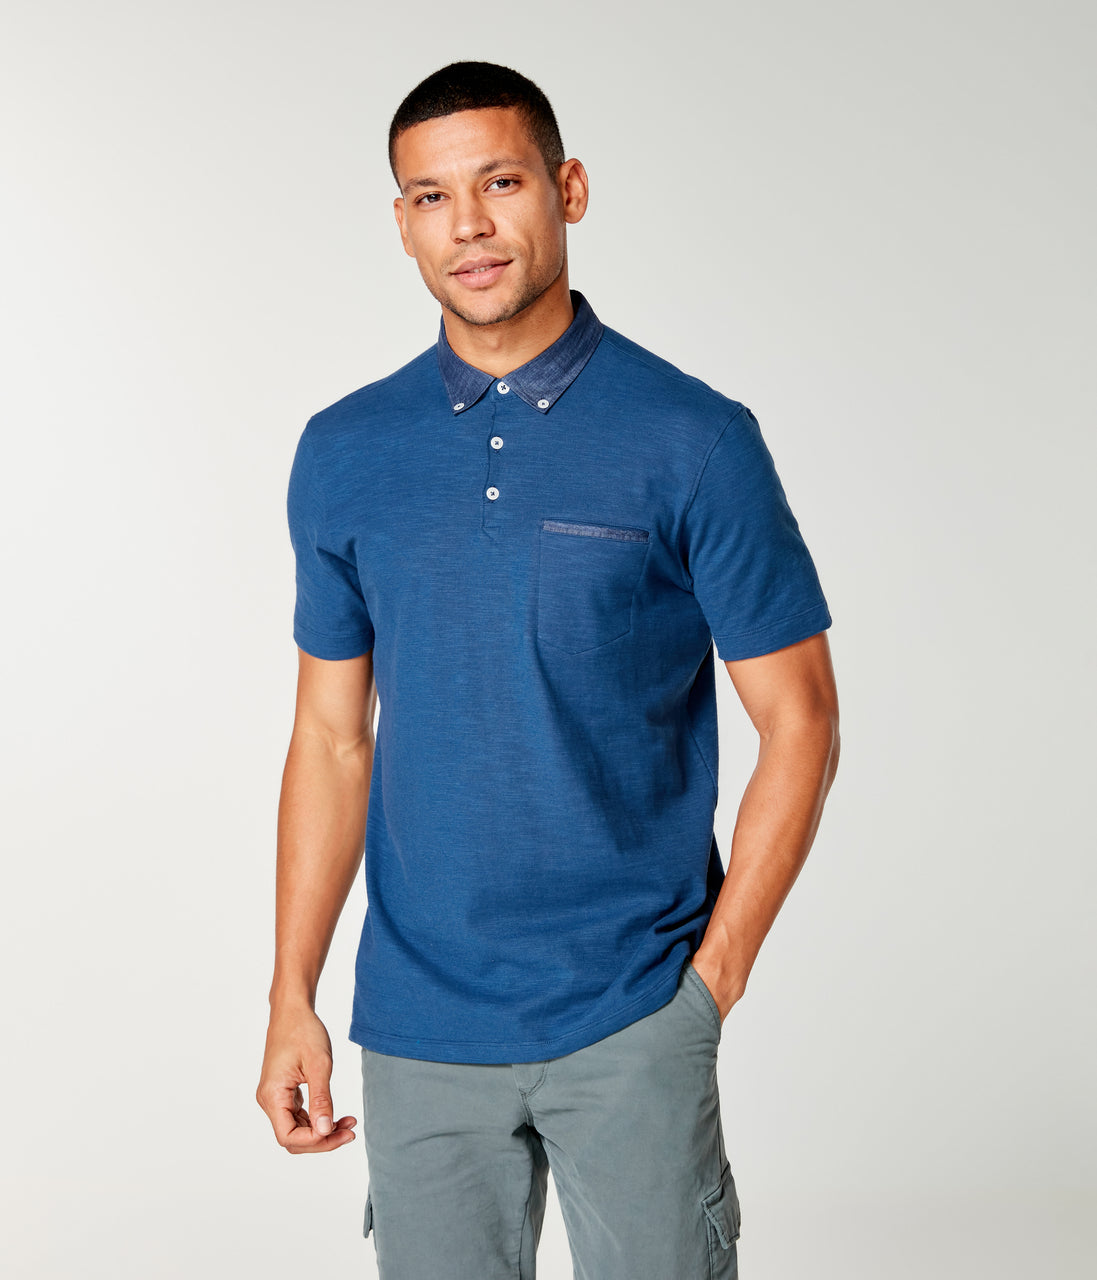 Soft Slub Jersey Polo - Blue Magic - Good Man Brand - Soft Slub Jersey Polo - Blue Magic